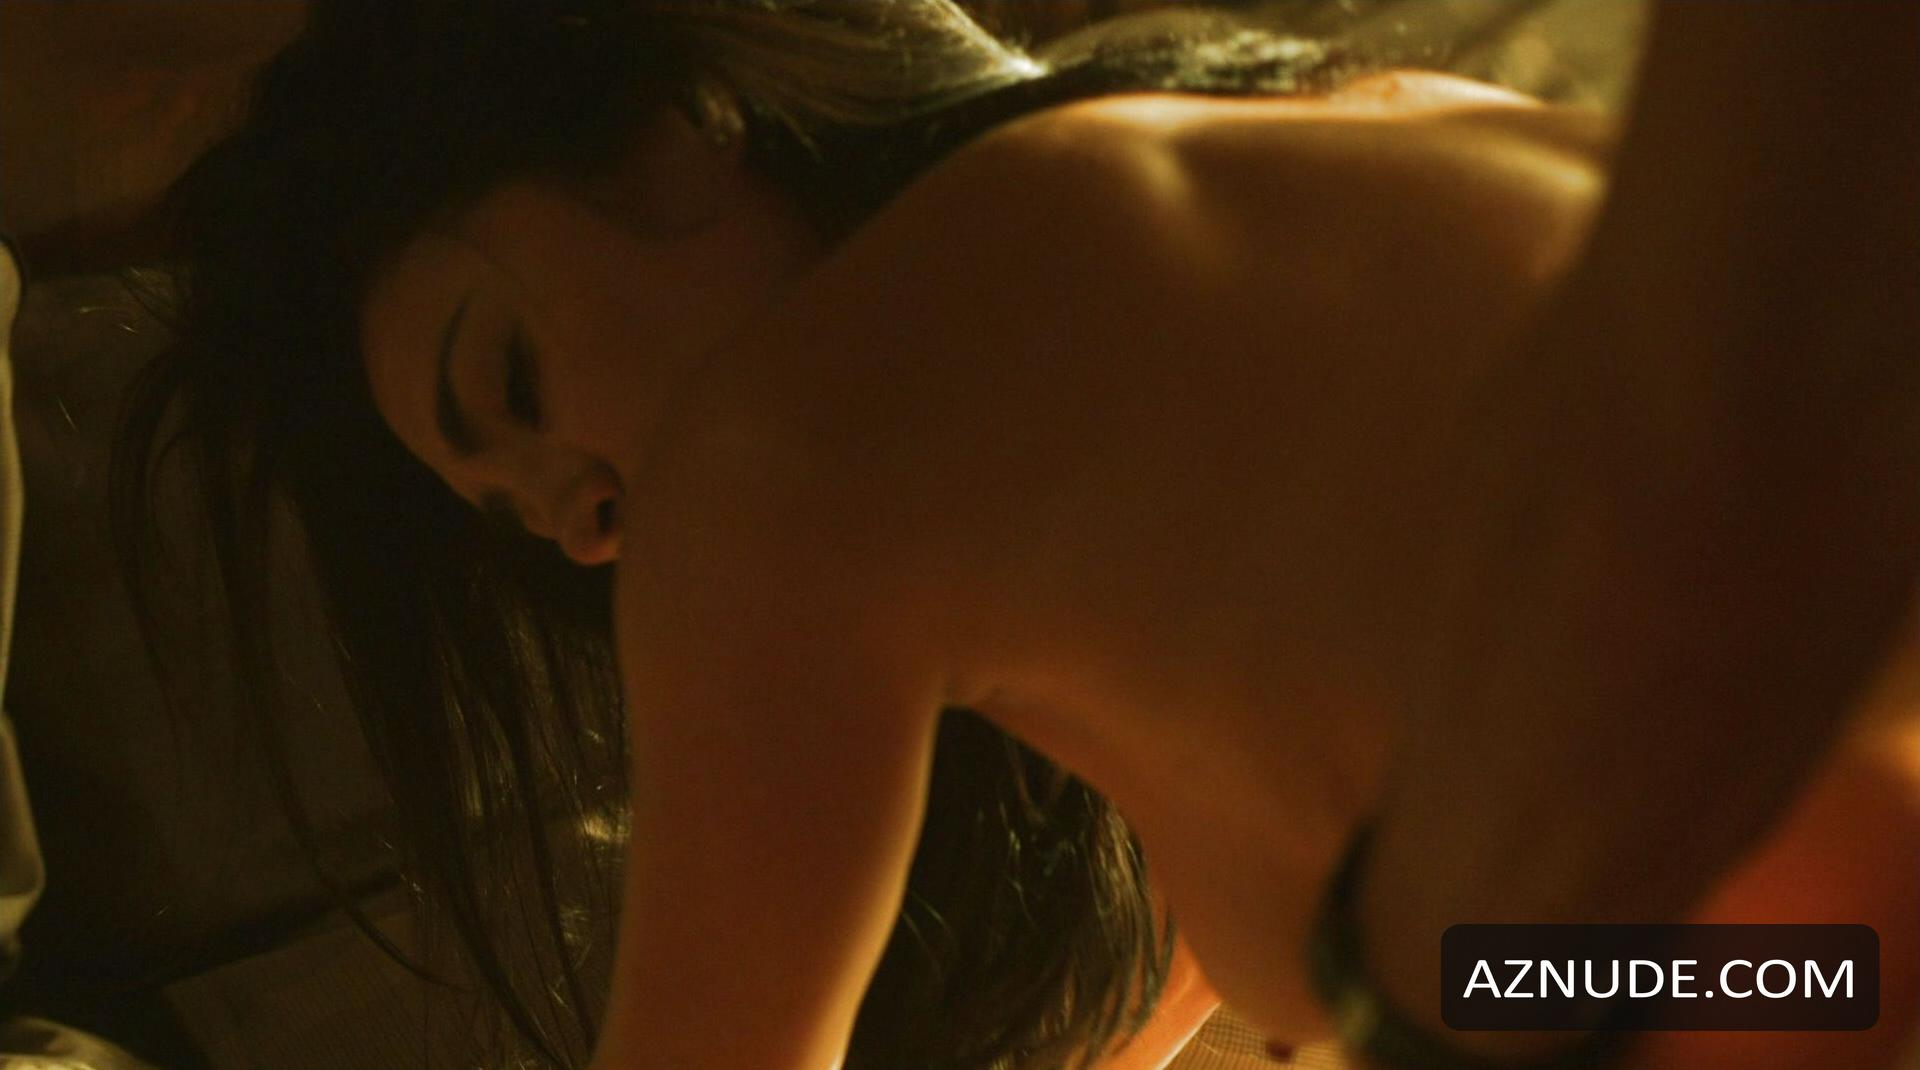 Poppy Drayton Nude Aznude - New Girl Wallpaper-5611